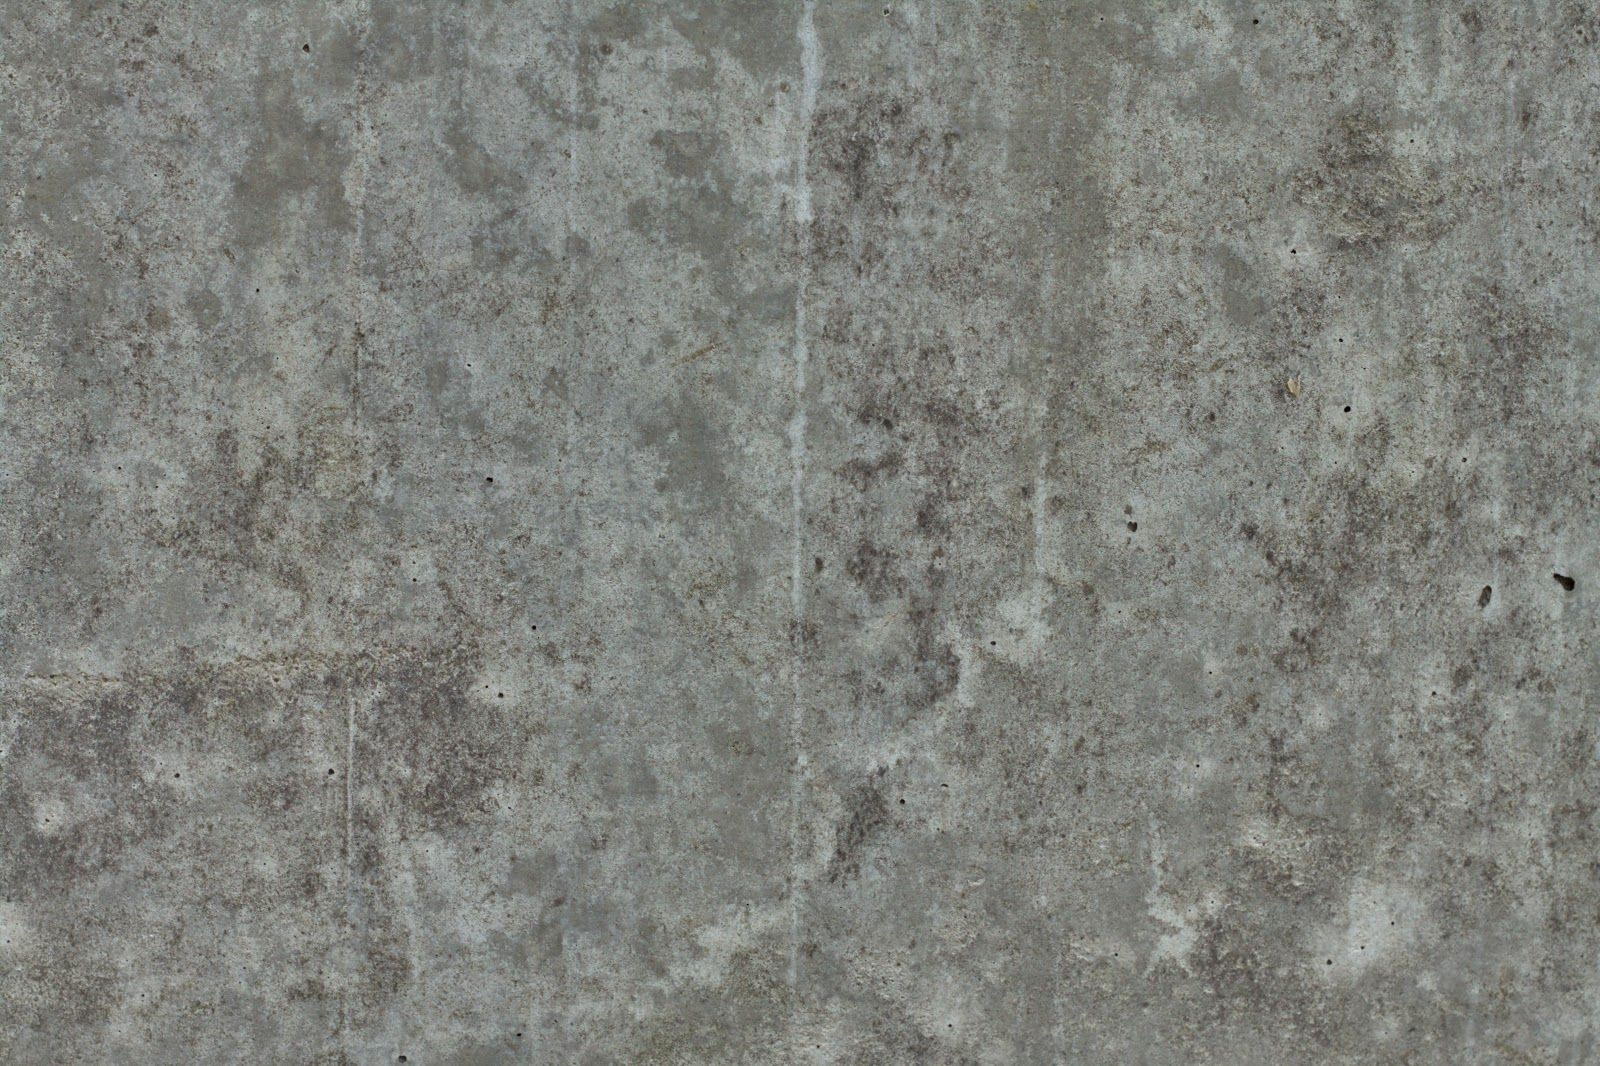 Concrete Granite Wall Smooth Dirt Pillar Texture Ver 9 Gimp Textures In 2019